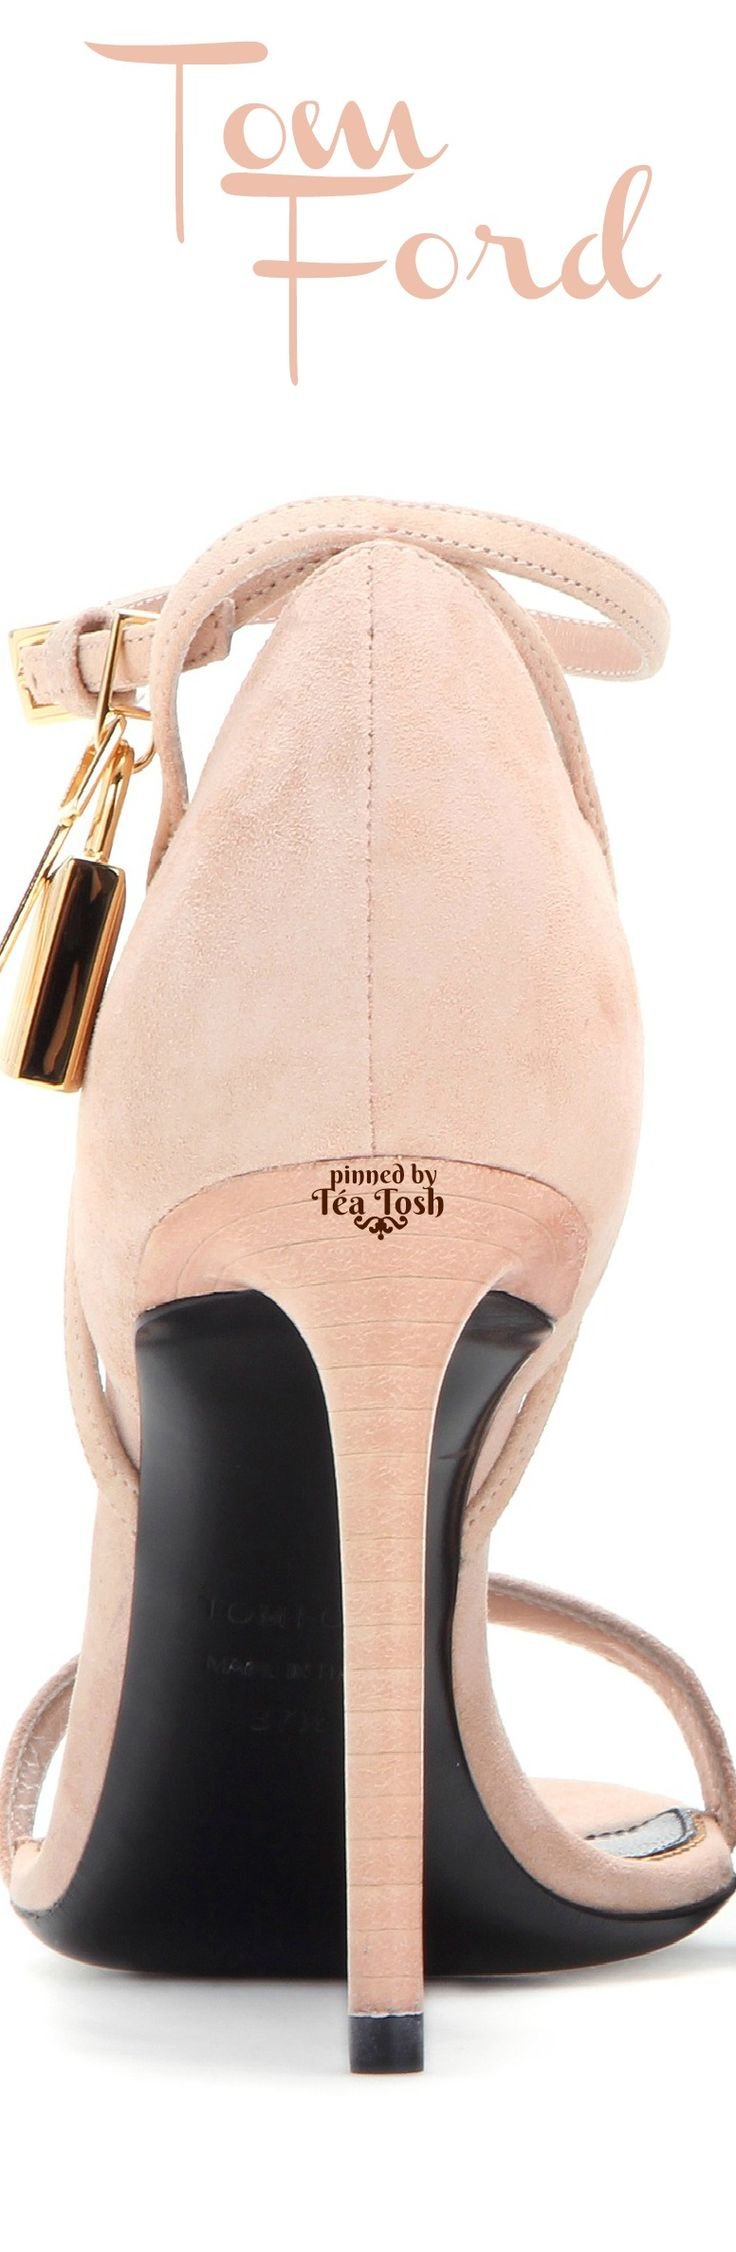 ❇Téa Tosh❇ Tom Ford